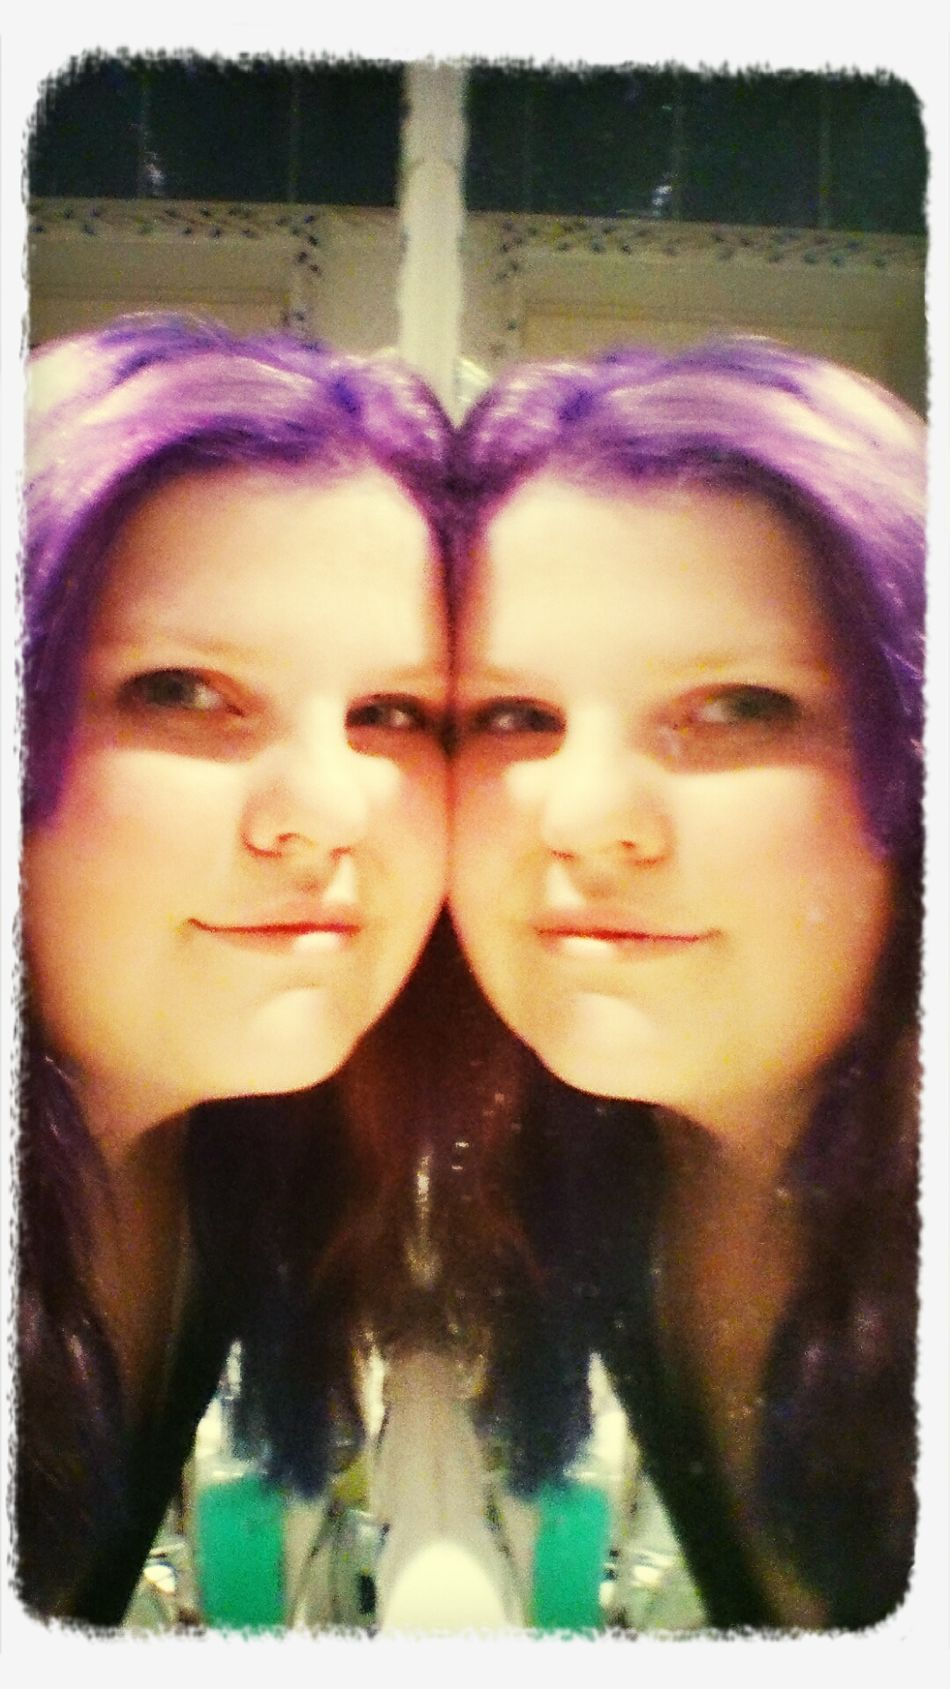 Me and my twin (love my purple hair <3)